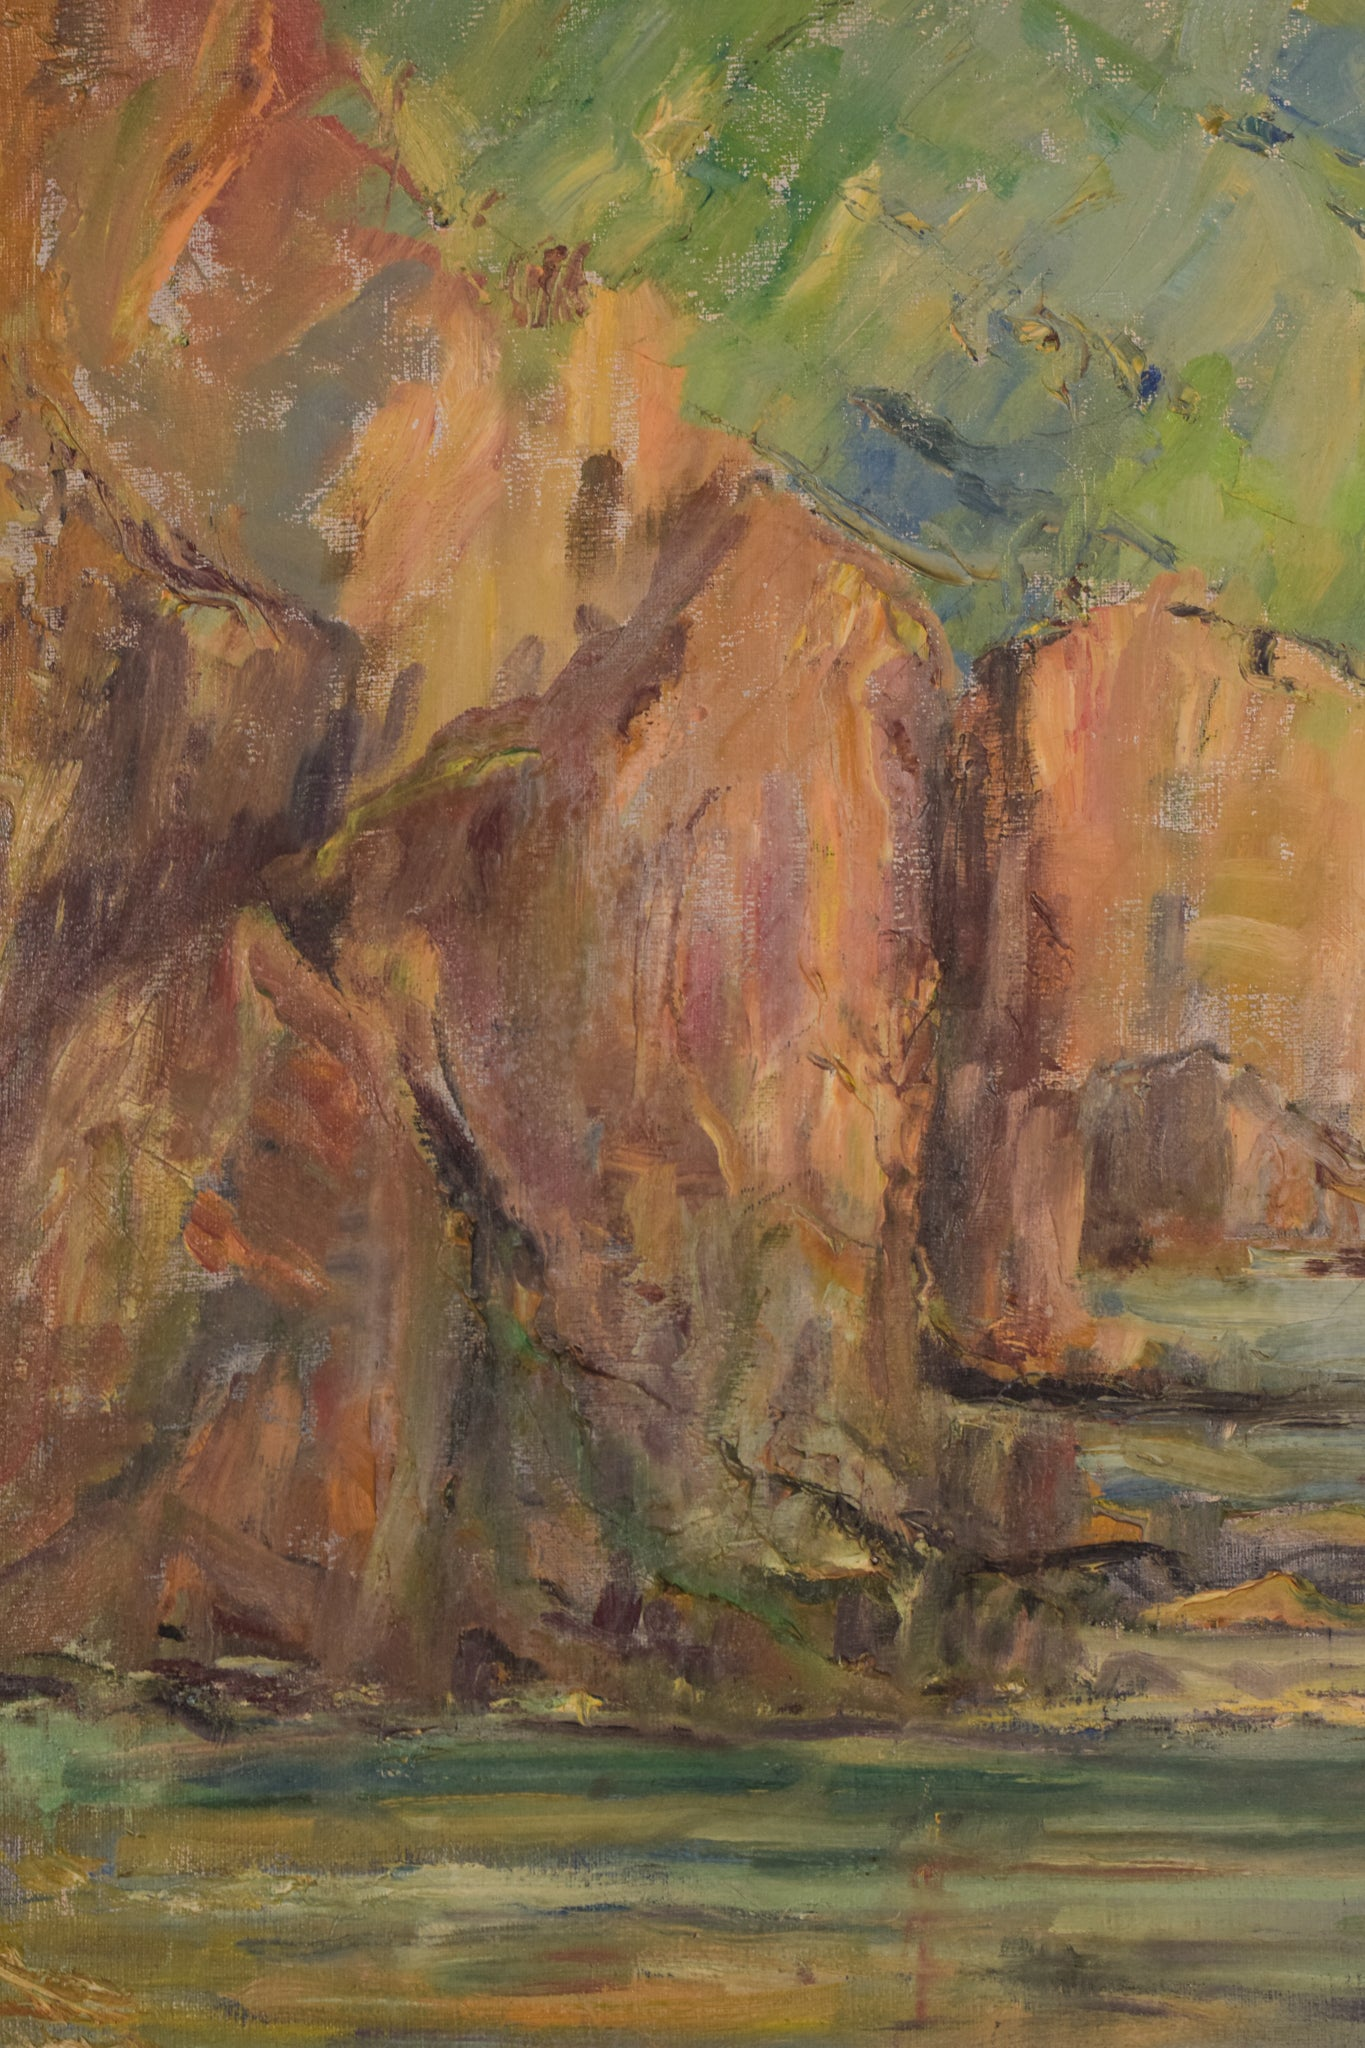 Impressionist seascape with cliffs. Oil on canvas.